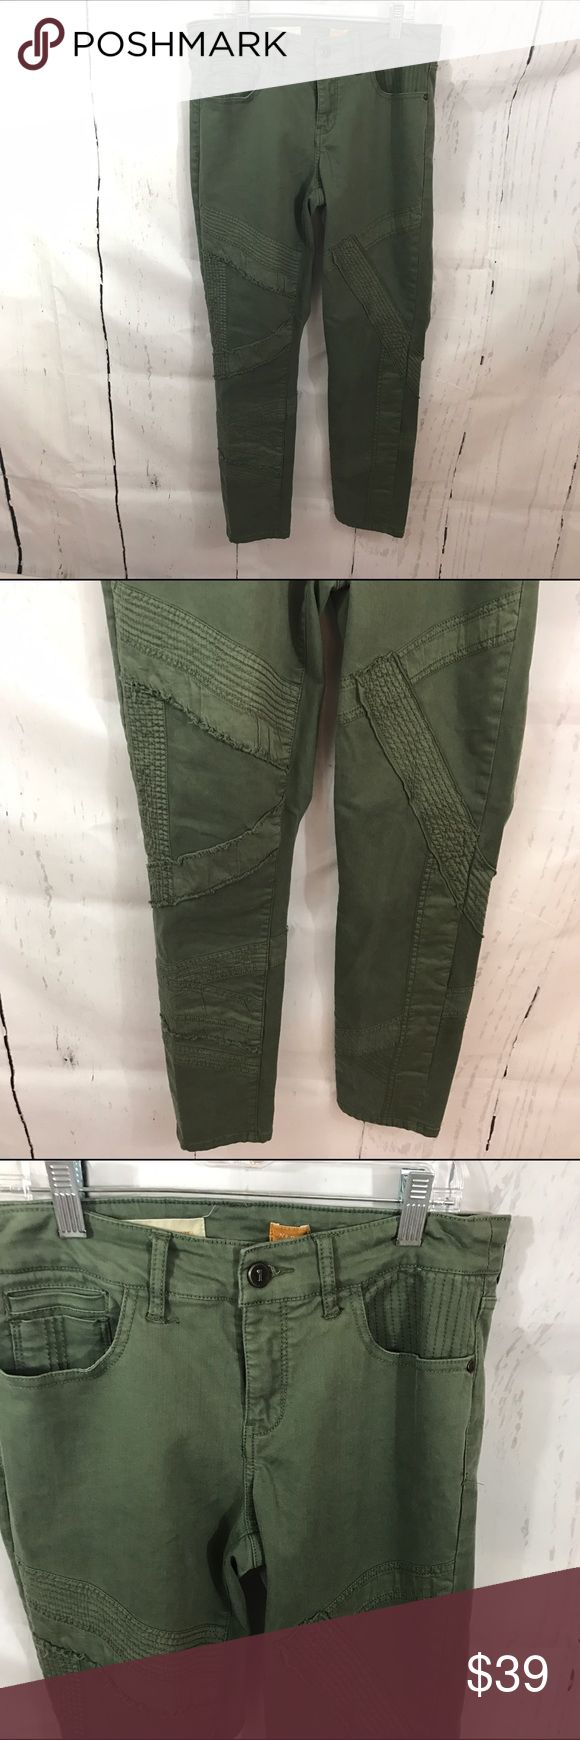 """💜💜 GREEN SKINNY JEANS B4 Condition: Euc Approximate measurements (laying flat): 14.5"""" Waist 36.5"""" length 28"""" inseam  Item location: bin 4   **bundles save 10%** no trades/no modeling/no asking for lowest Anthropologie Jeans Skinny"""